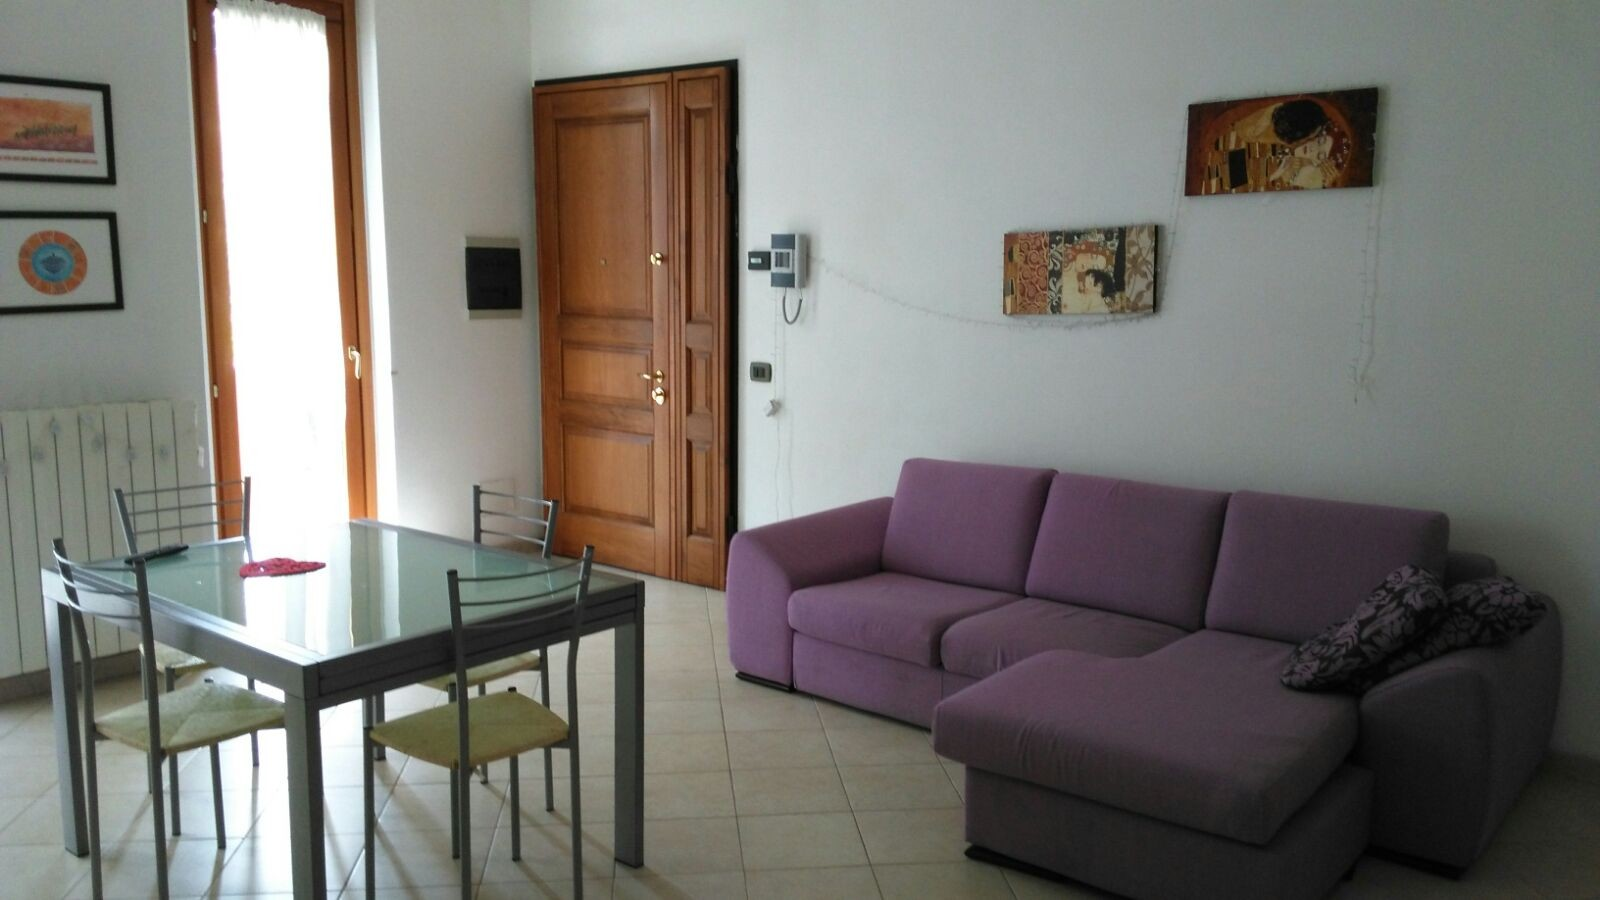 Modern and luminous apartment near by Siena / For Erasmus students first semester 16/17